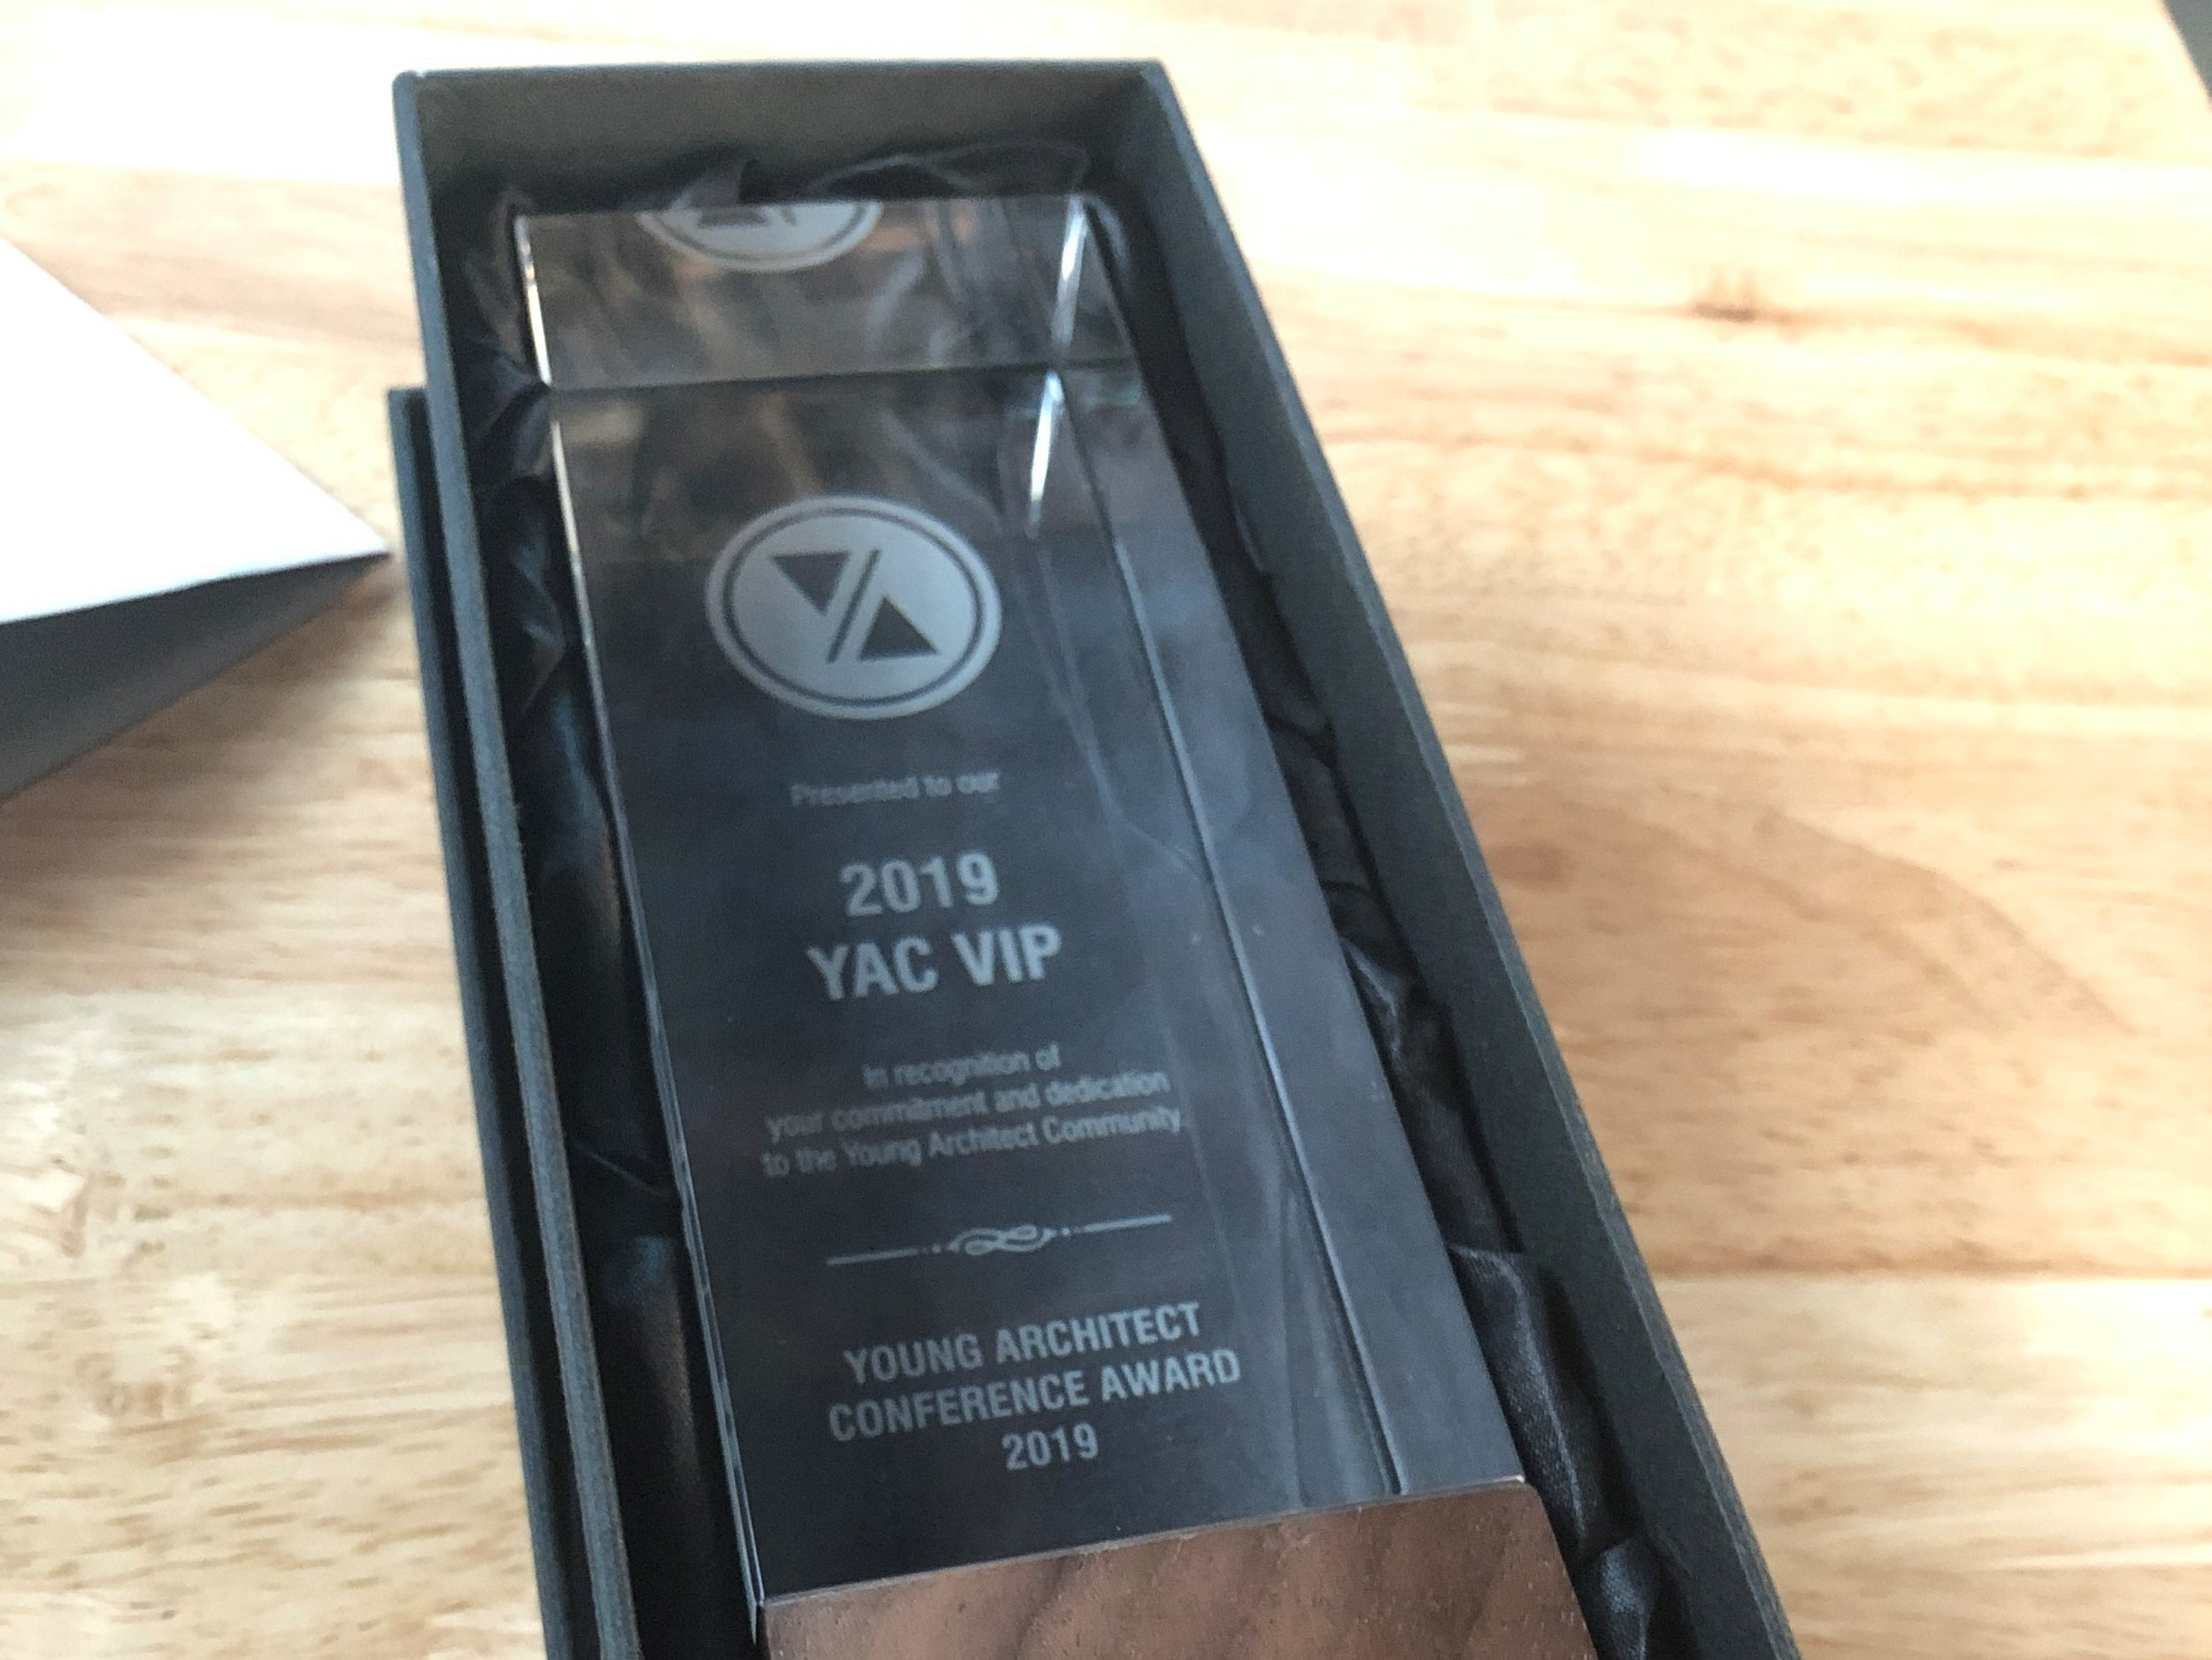 I was named MVP of the conference (which, wow.)